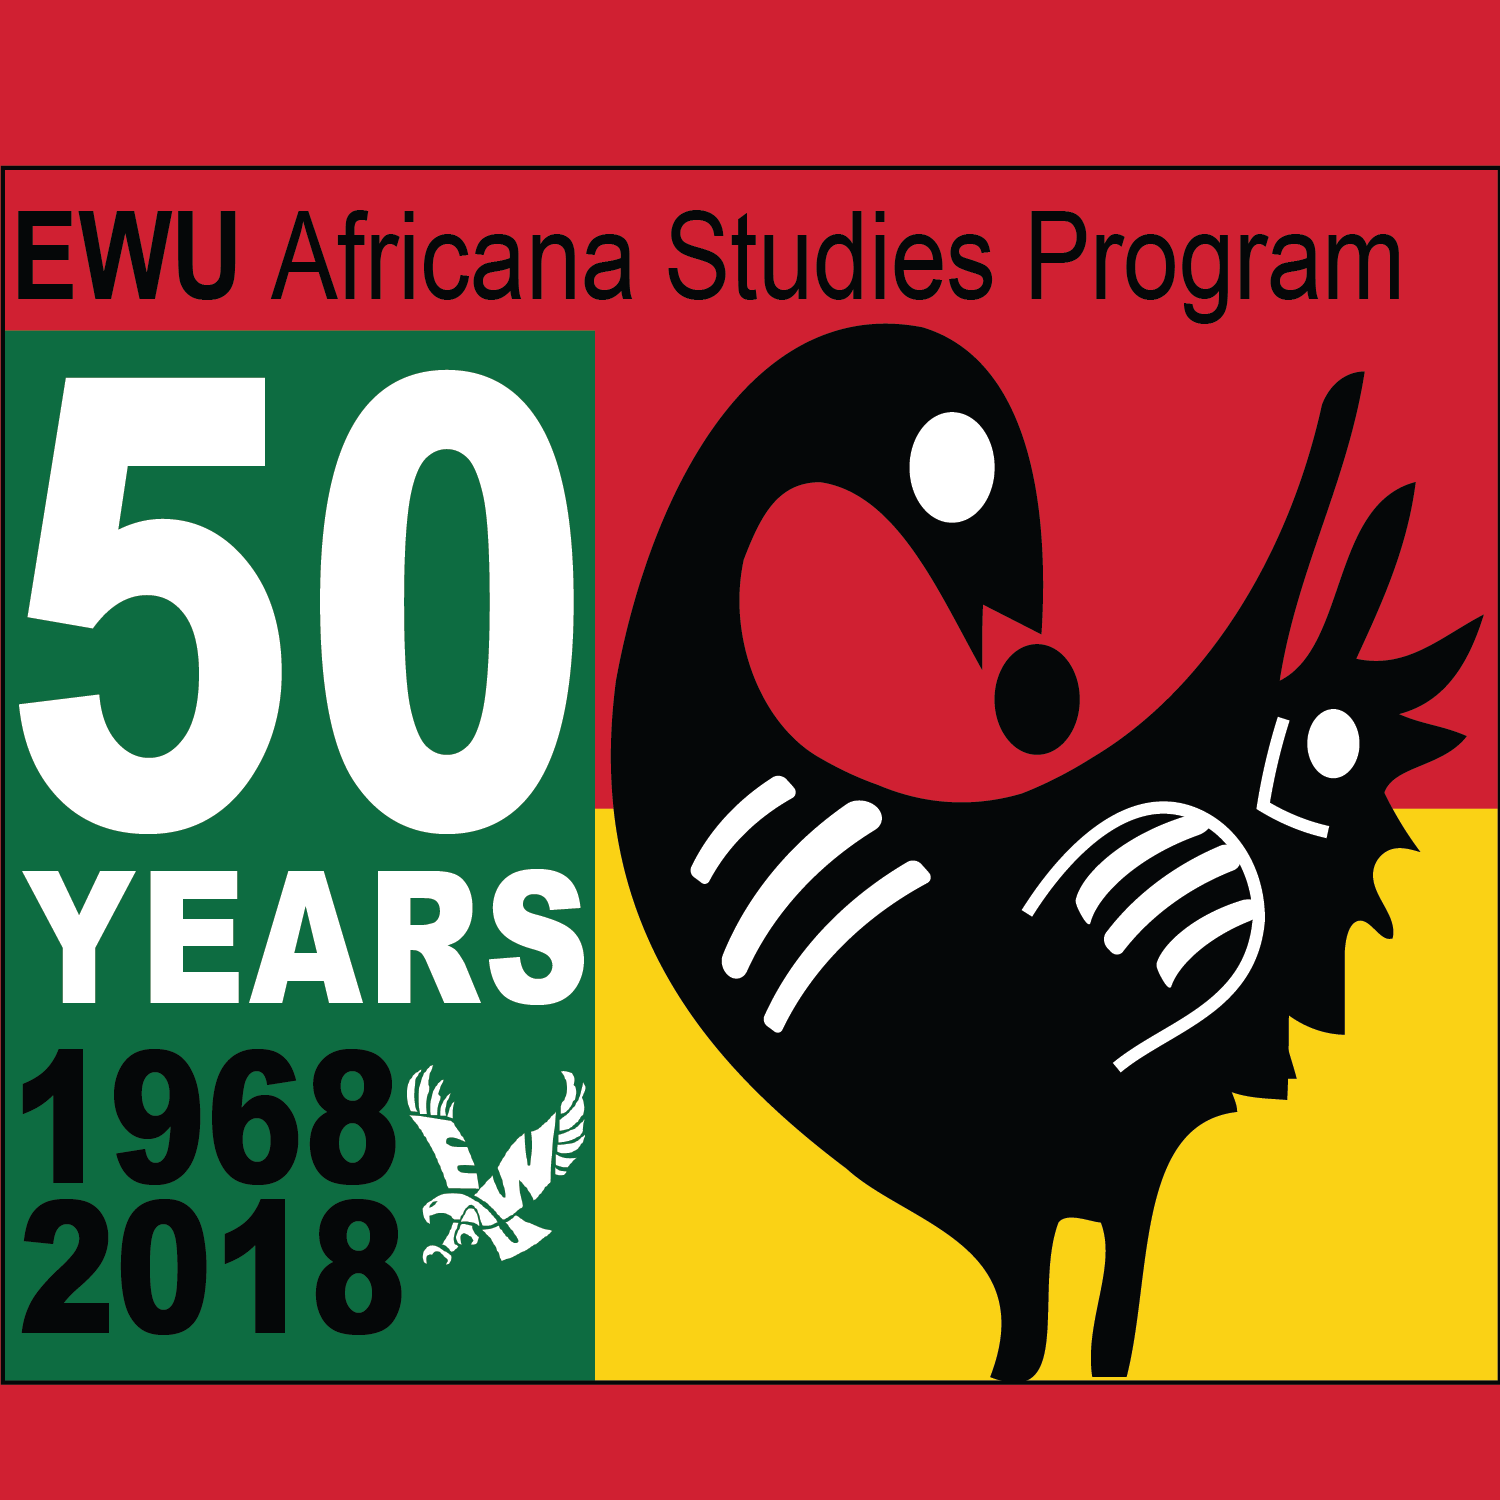 The EWU Africana Studies graphic celebrates the program's 50-year anniversary. The program started in 1968.